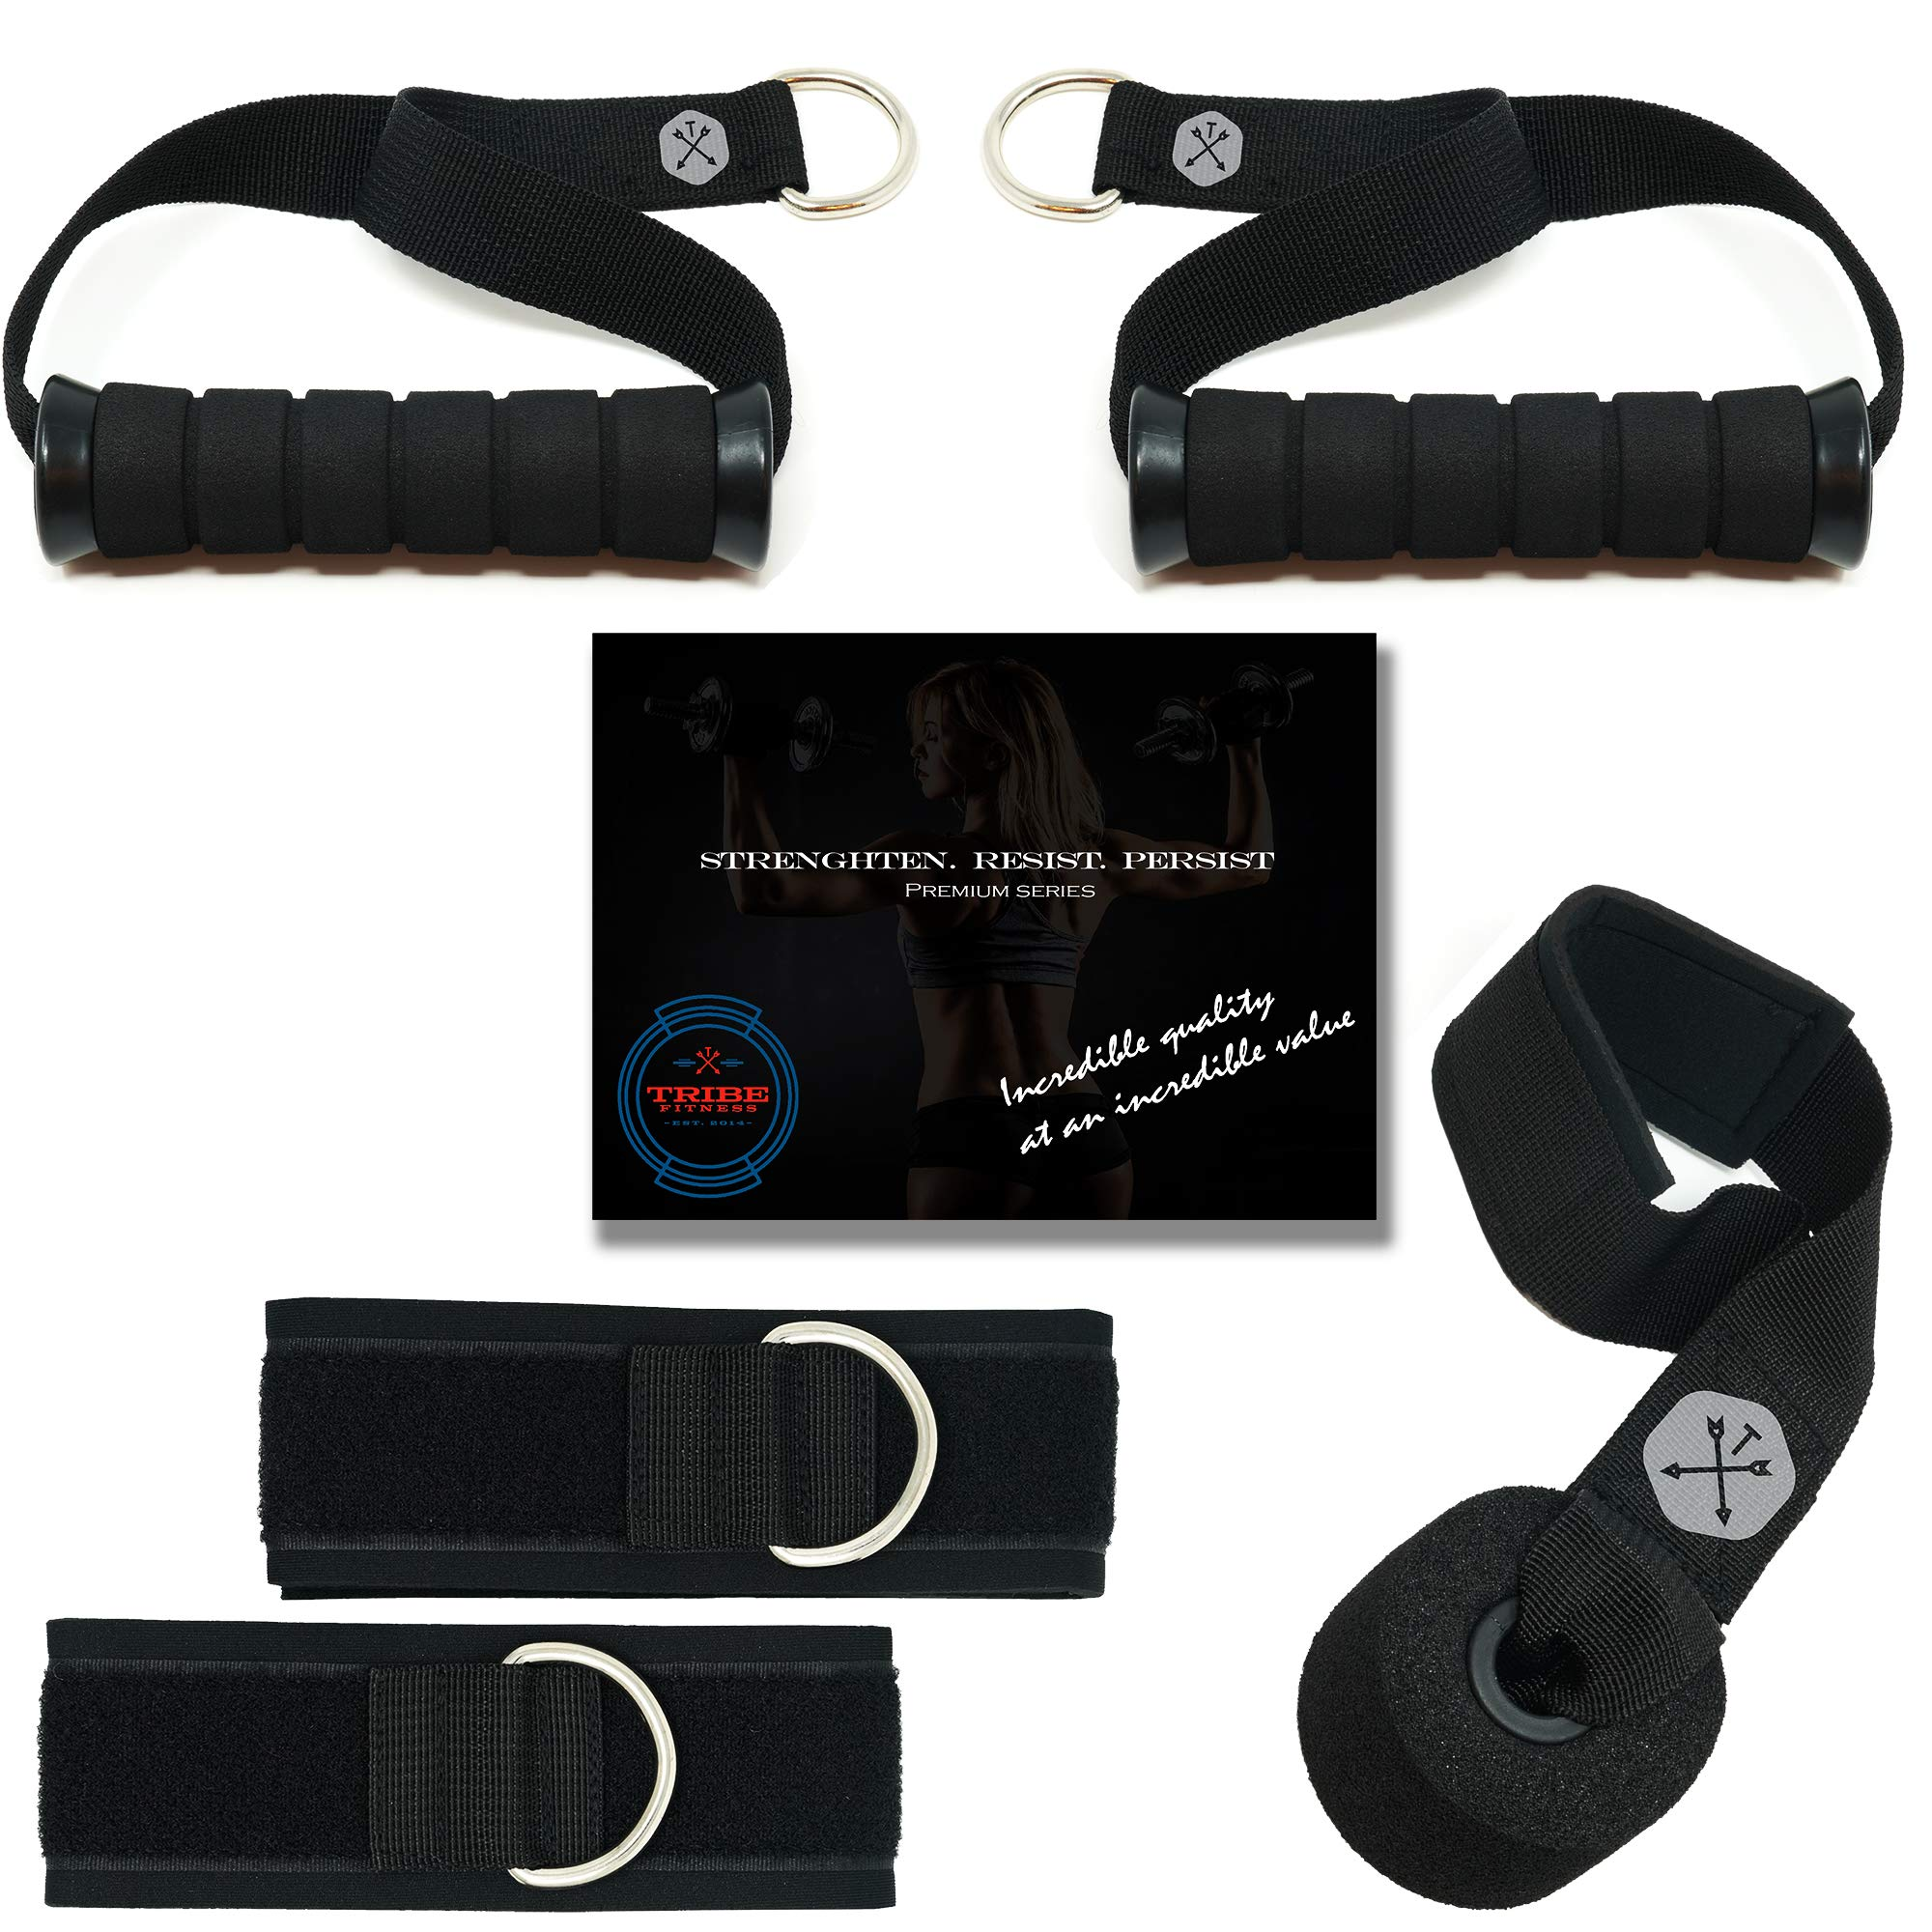 Tribe Premium Resistance Bands Accessories Set - for use with Exercise Bands, Includes 2 Handles, 2 Ankle Straps, 1 Door Anchor & Advanced eBook